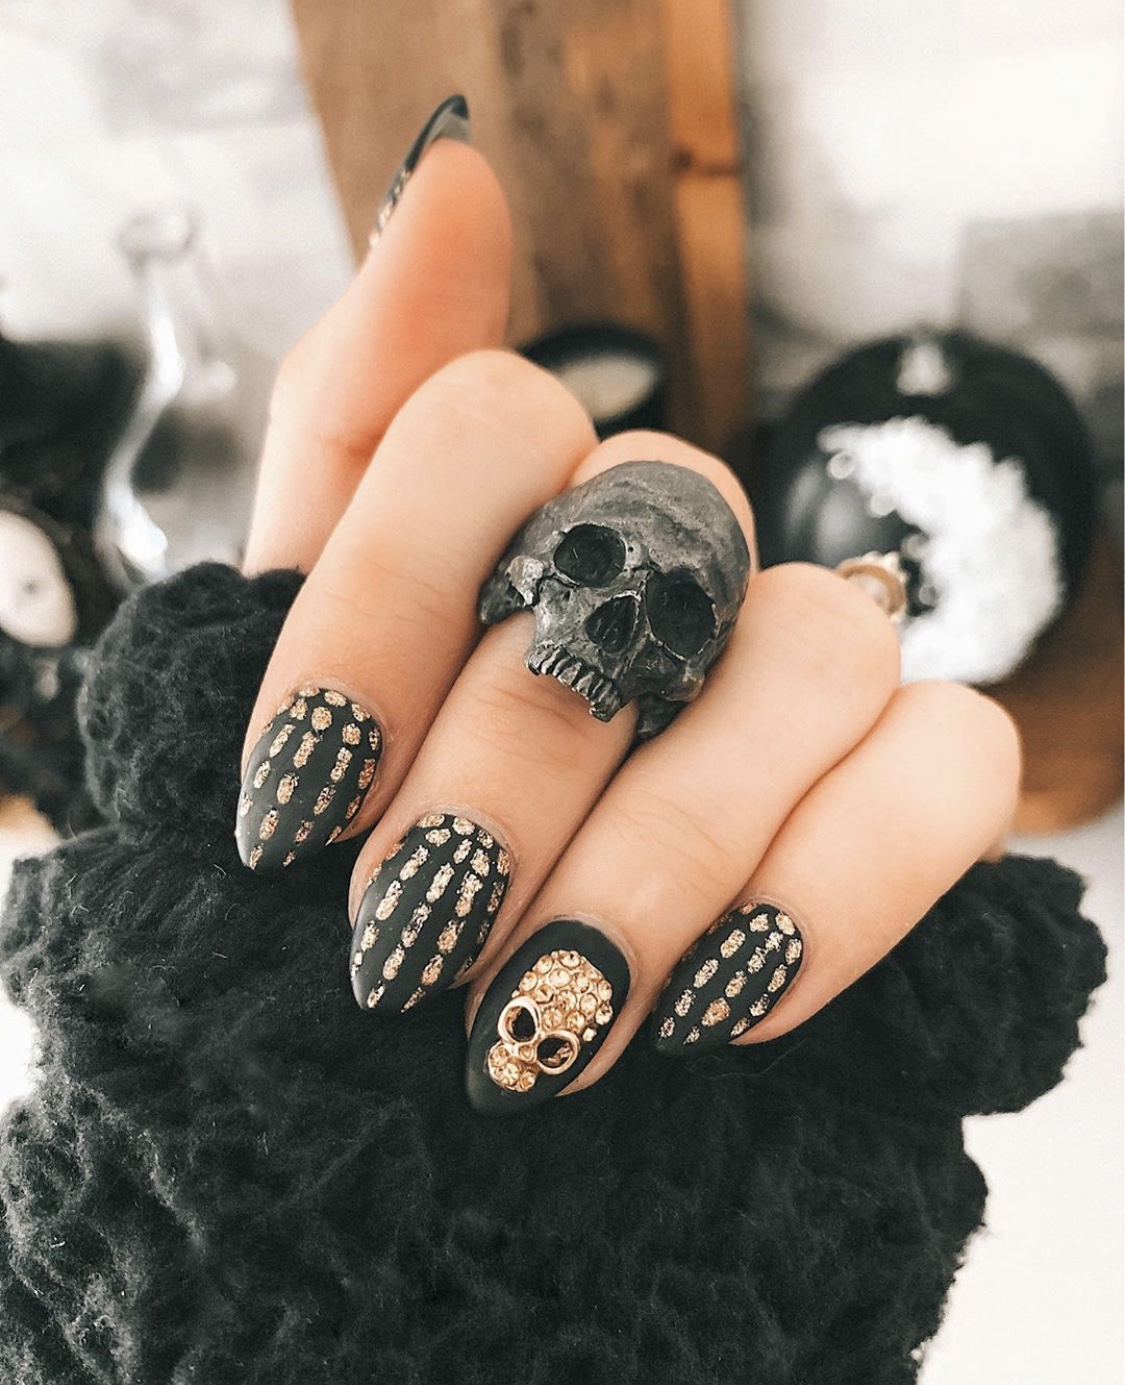 Nail Art Designs by popular Austin beauty blog, Dressed to Kill: image of a woman with gold and black skeleton design nail art and wearing a Into the Fire skull ring.